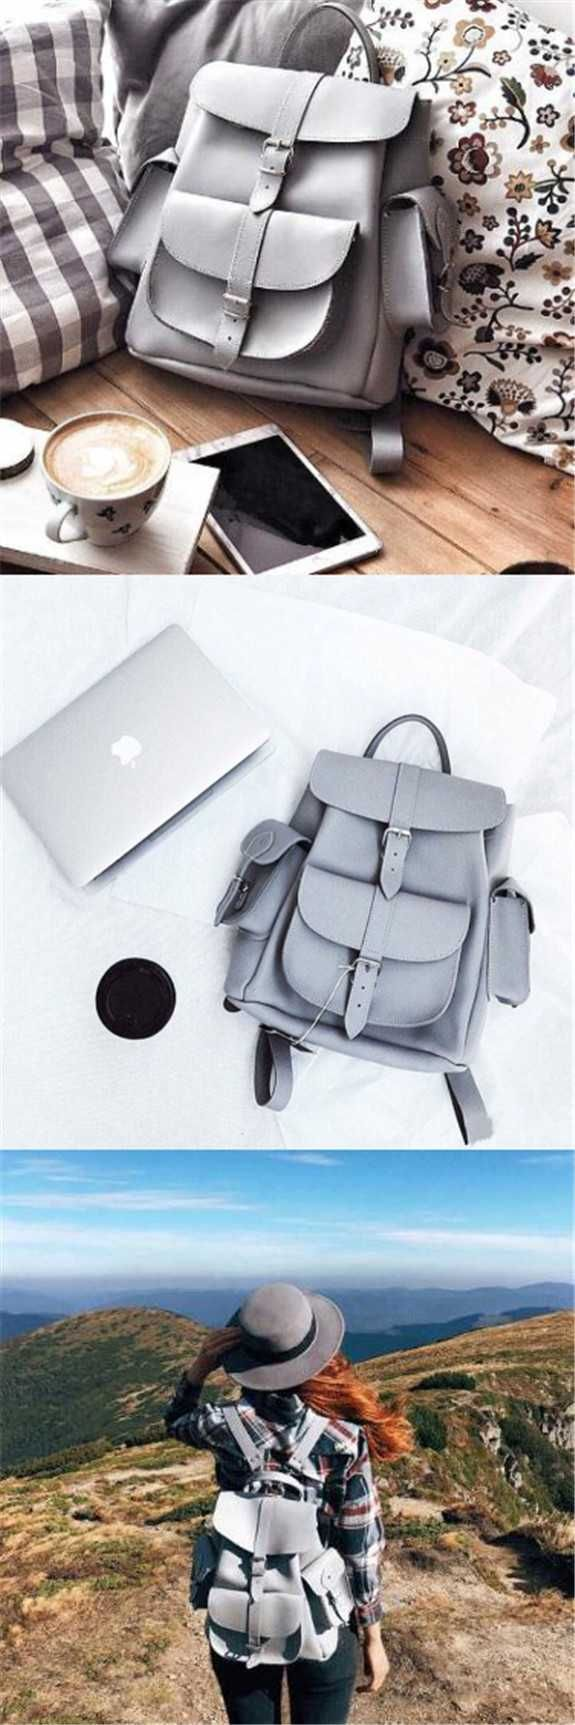 cute backpack handbags leather purses backpacks school college backpack back to school back pack. Save.extra 20% OFF on $45+ Sitewide till 30th use code SUMMER20%OFF